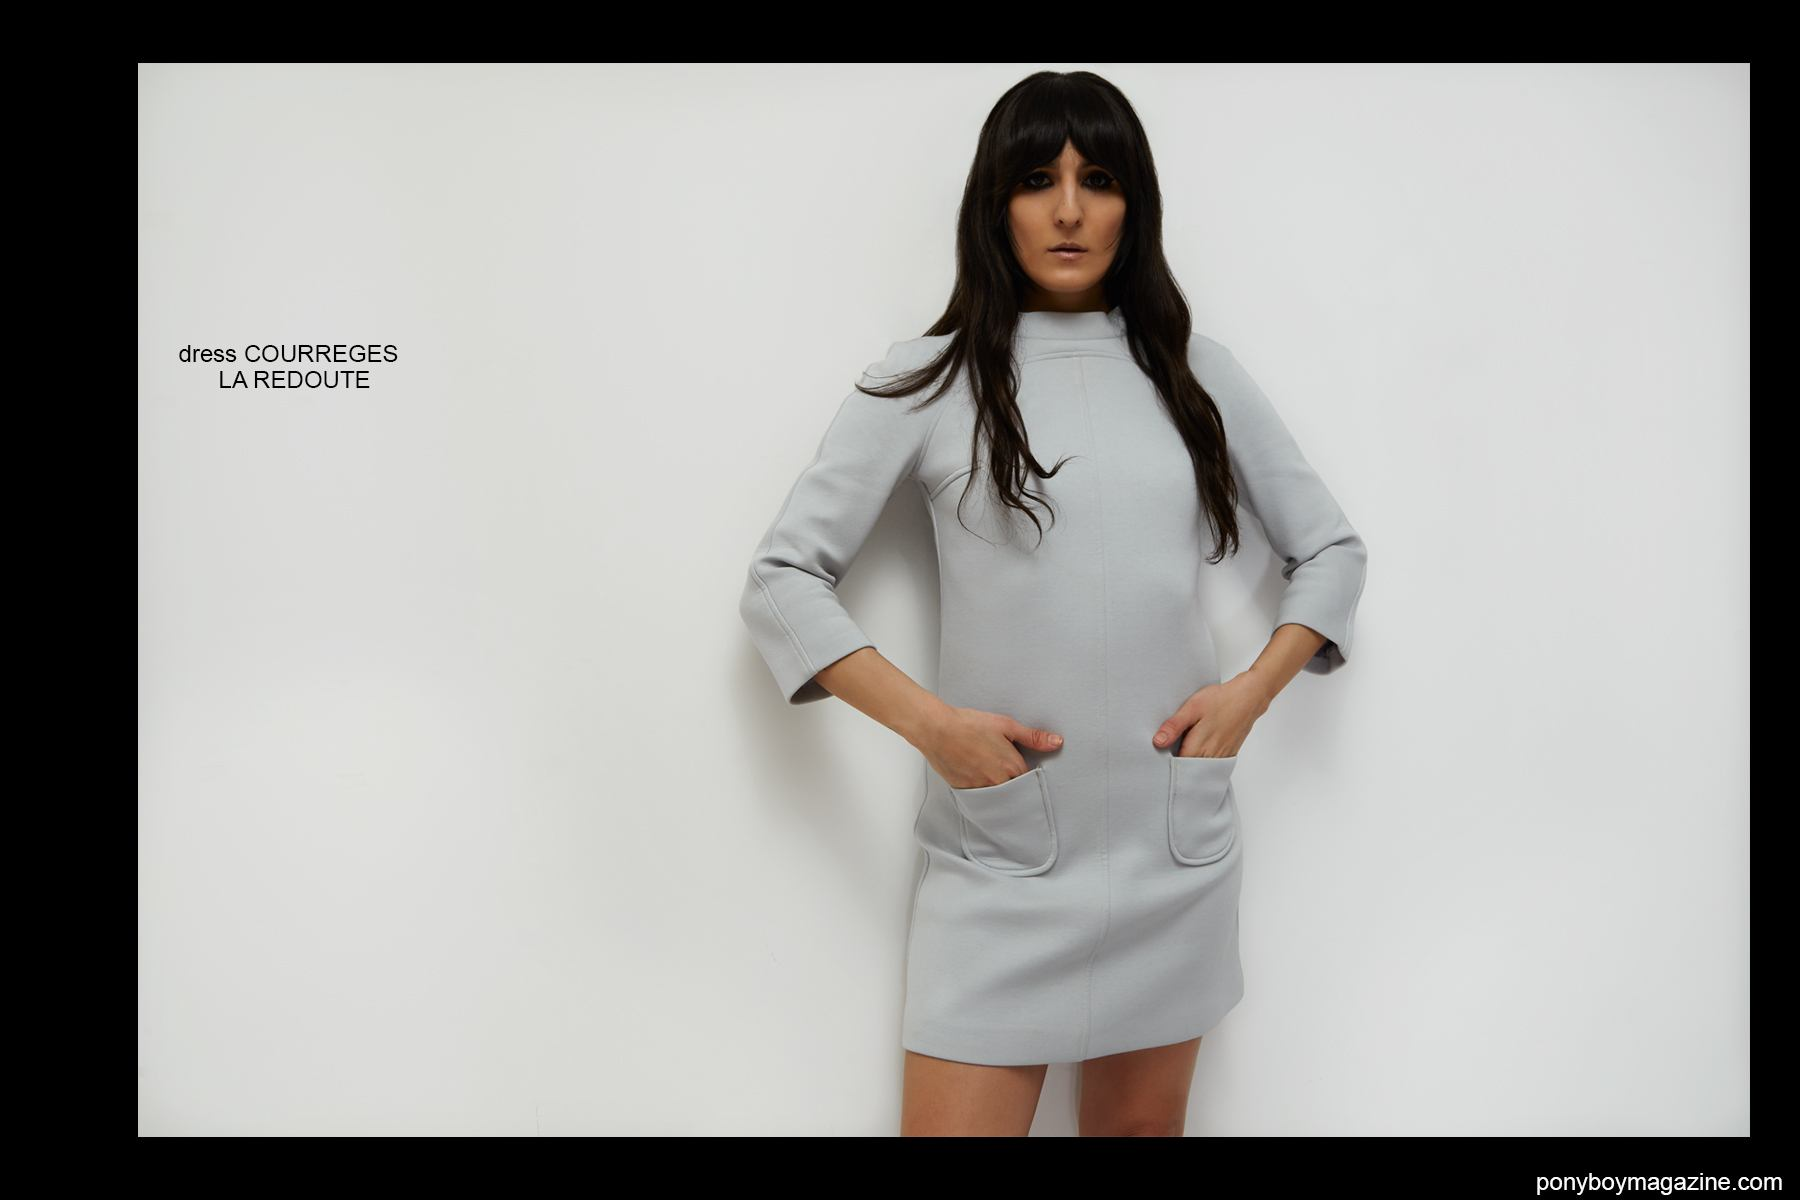 Krisin Gallegos photographed in Courreges by Alexander Thompson for Ponyboy magazine.